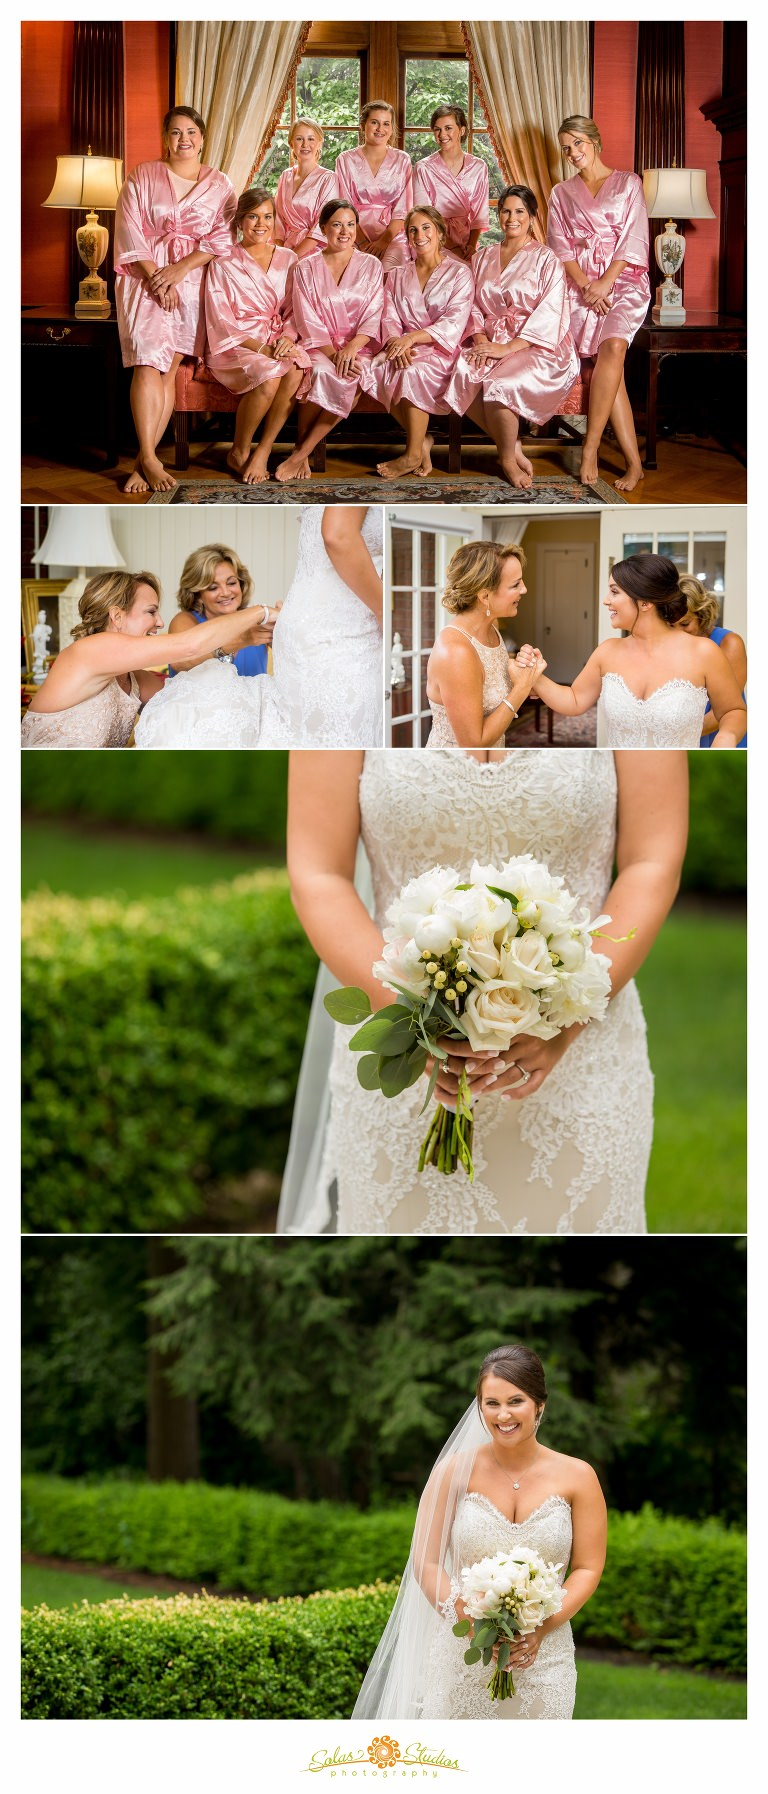 Solas-Studios-Wedding-at-St-Margaret's-Catholic-Church-Homer-NY-3